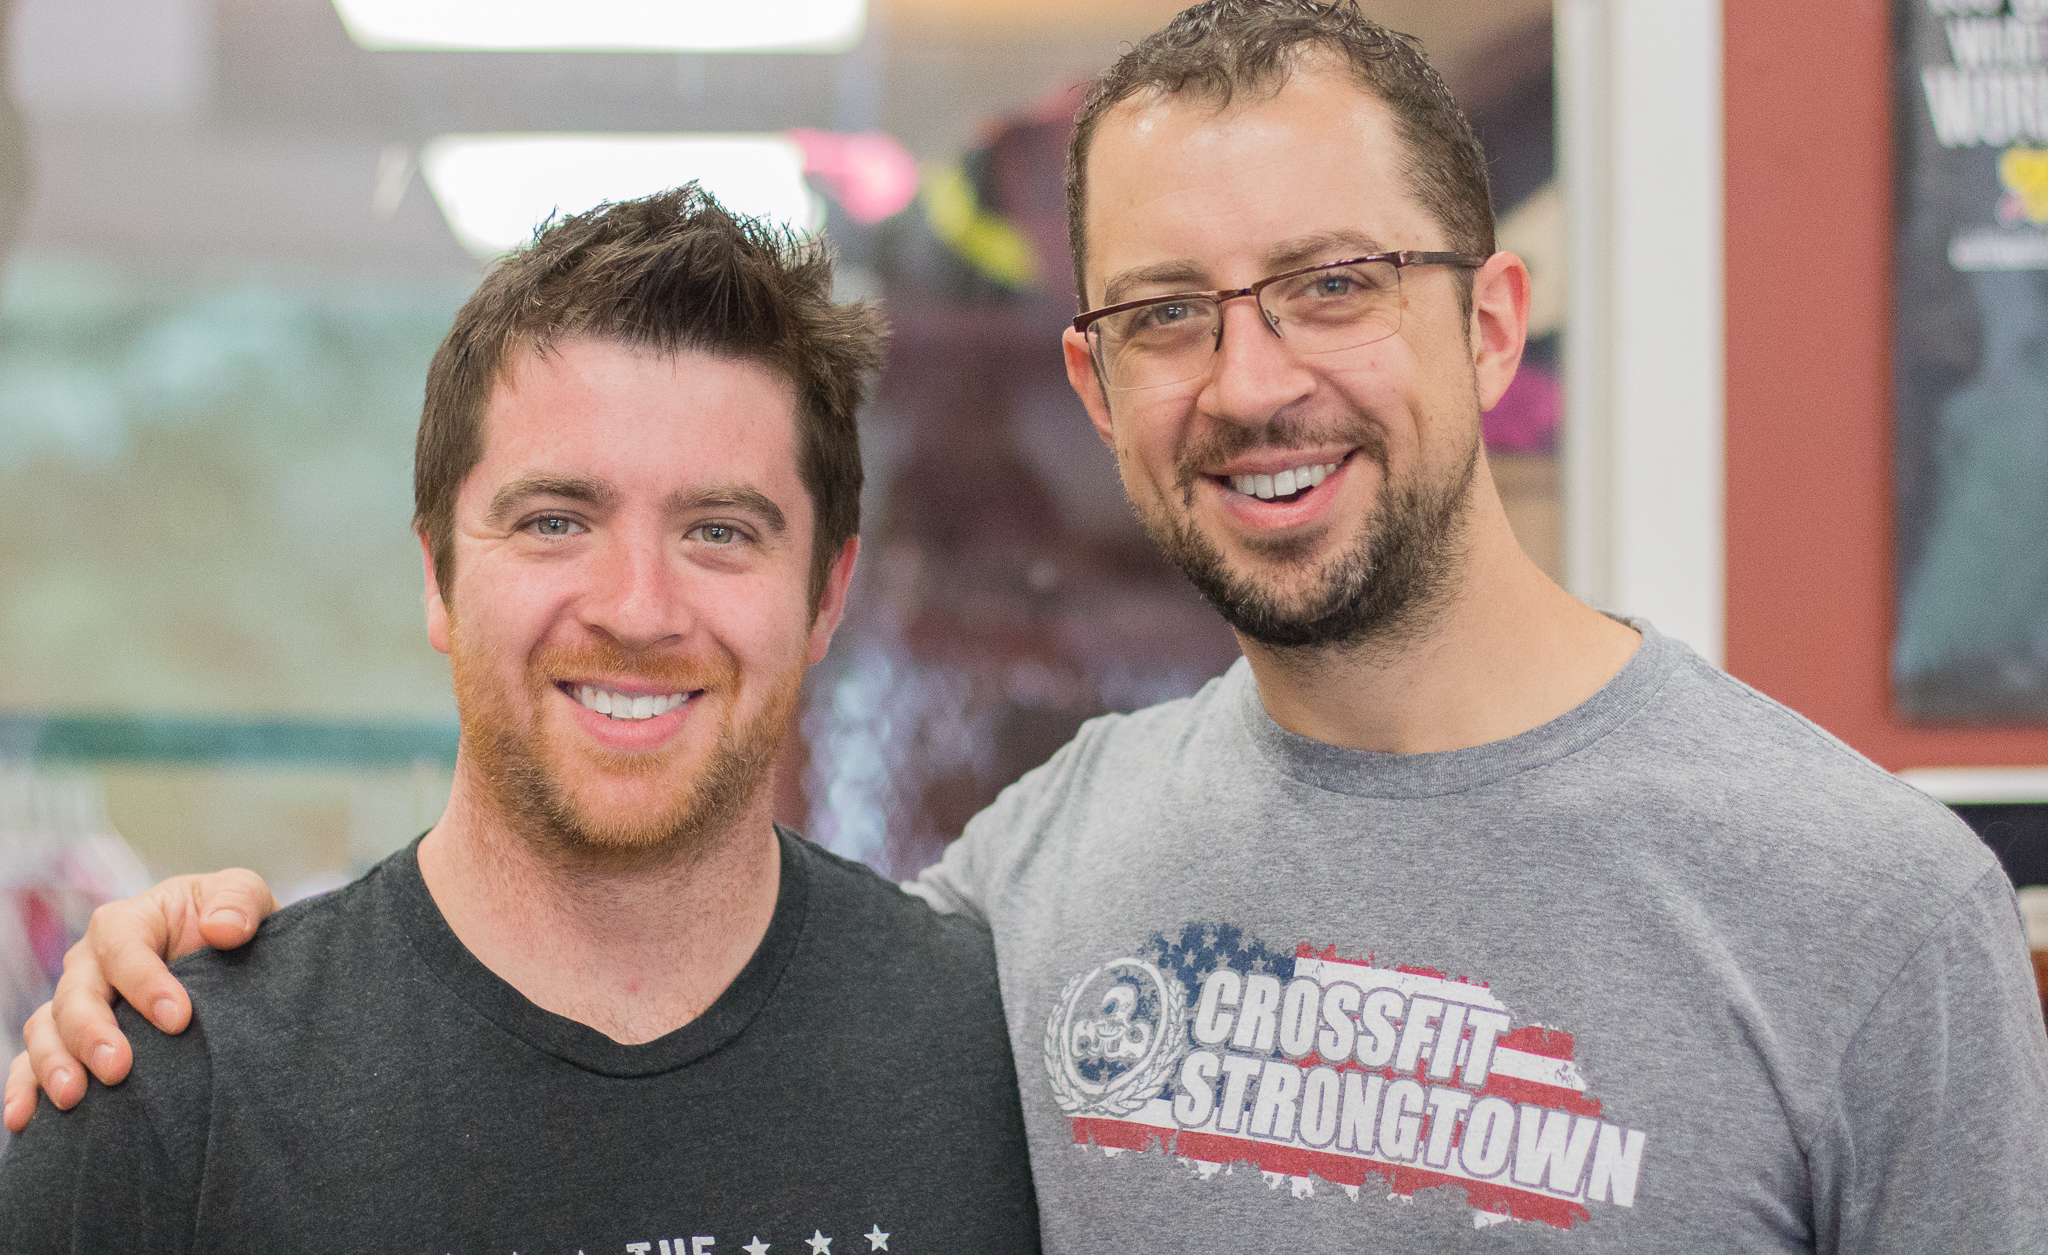 Mickey Gallagher and Dan Gallagher owners of Crossfit Strongtown